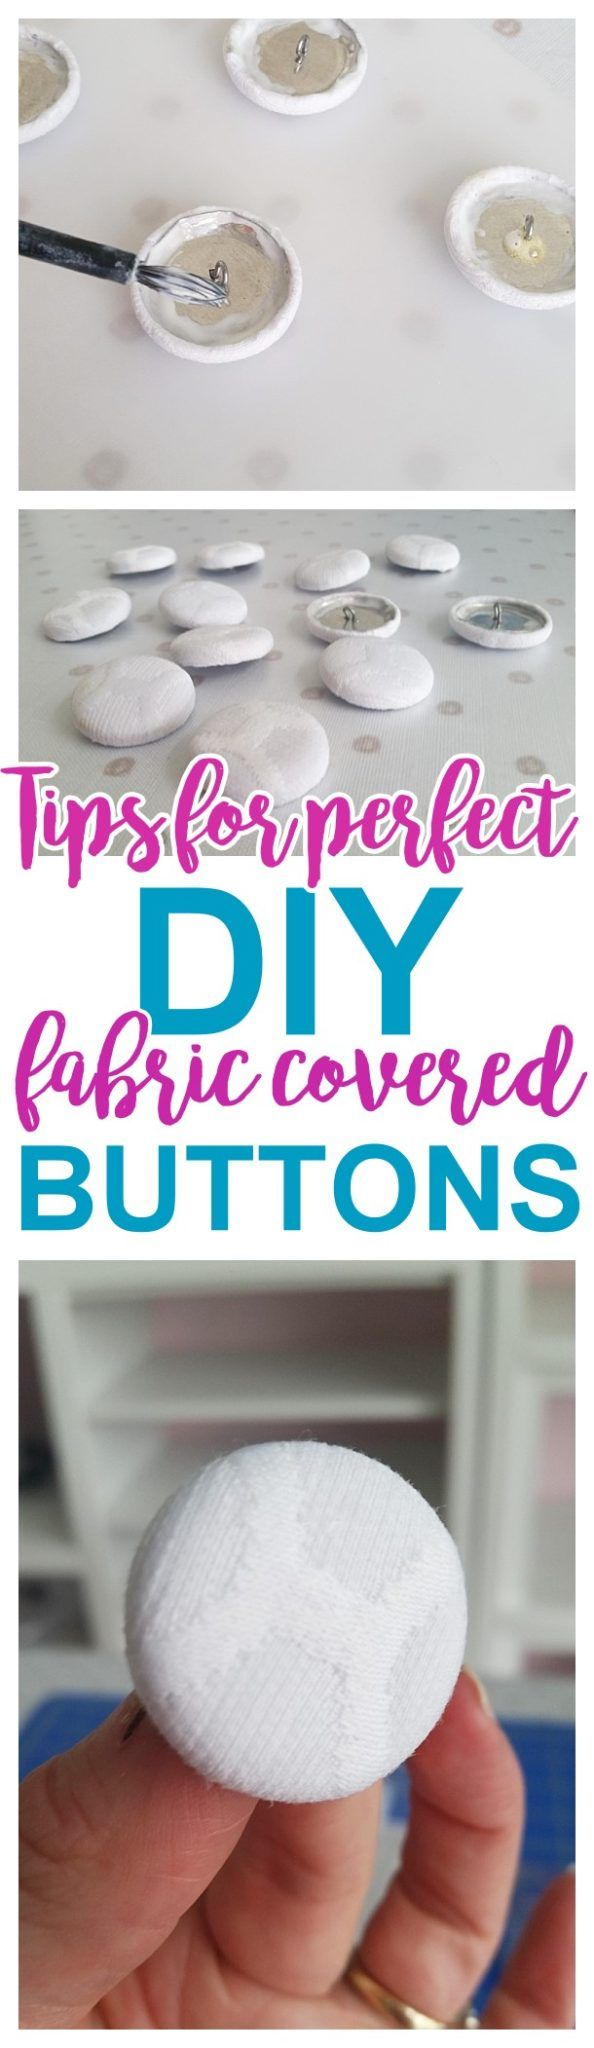 Diy upholstery fabric covered buttons tips tricks and hacks to diy upholstery fabric covered buttons tips tricks and hacks to make them easy and solutioingenieria Gallery